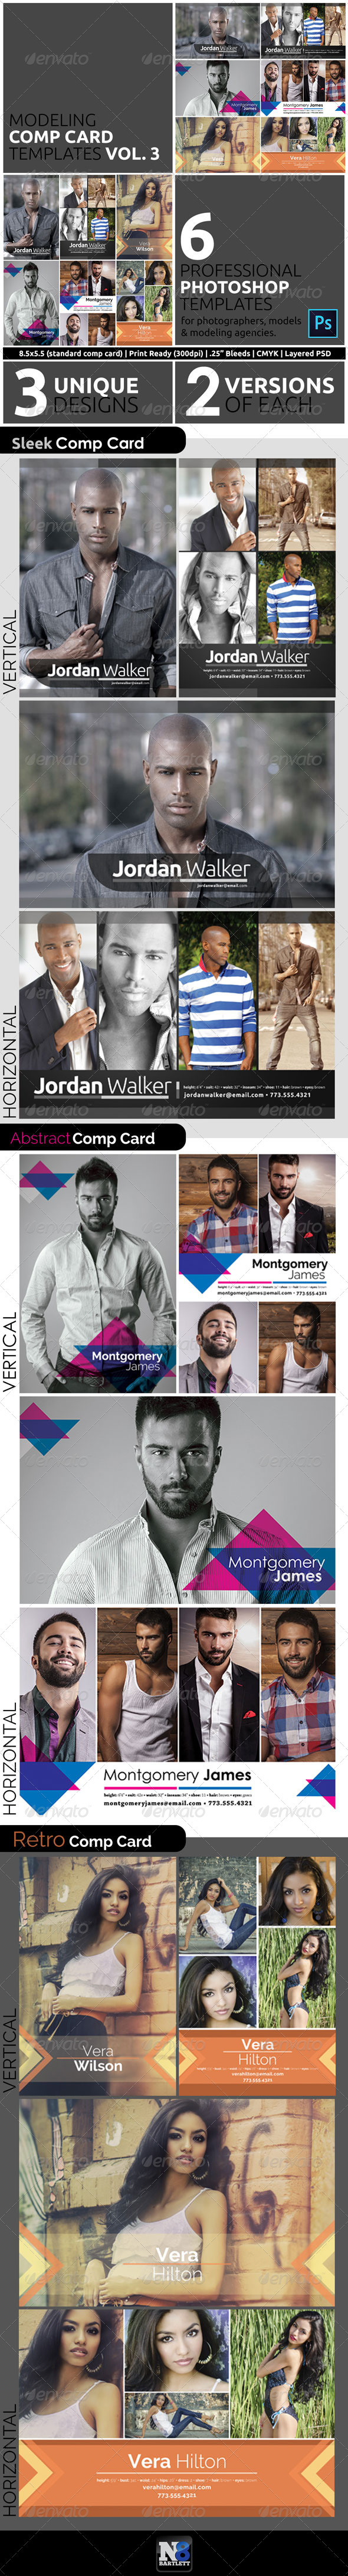 GraphicRiver Model Comp Card Template Kit Vol 3 8105328